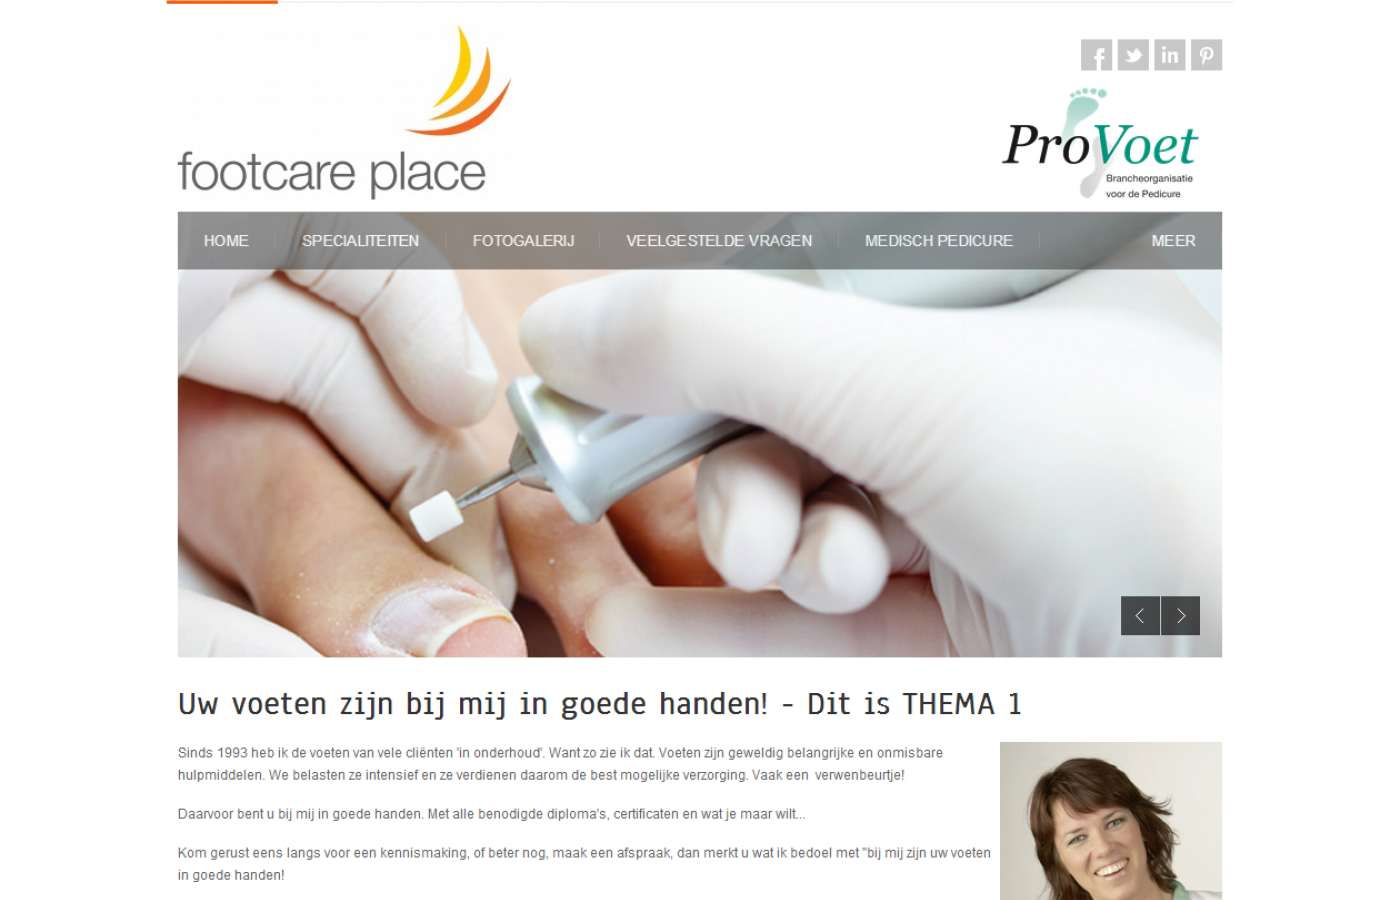 voorbeeld pedicurewbsite thema 1